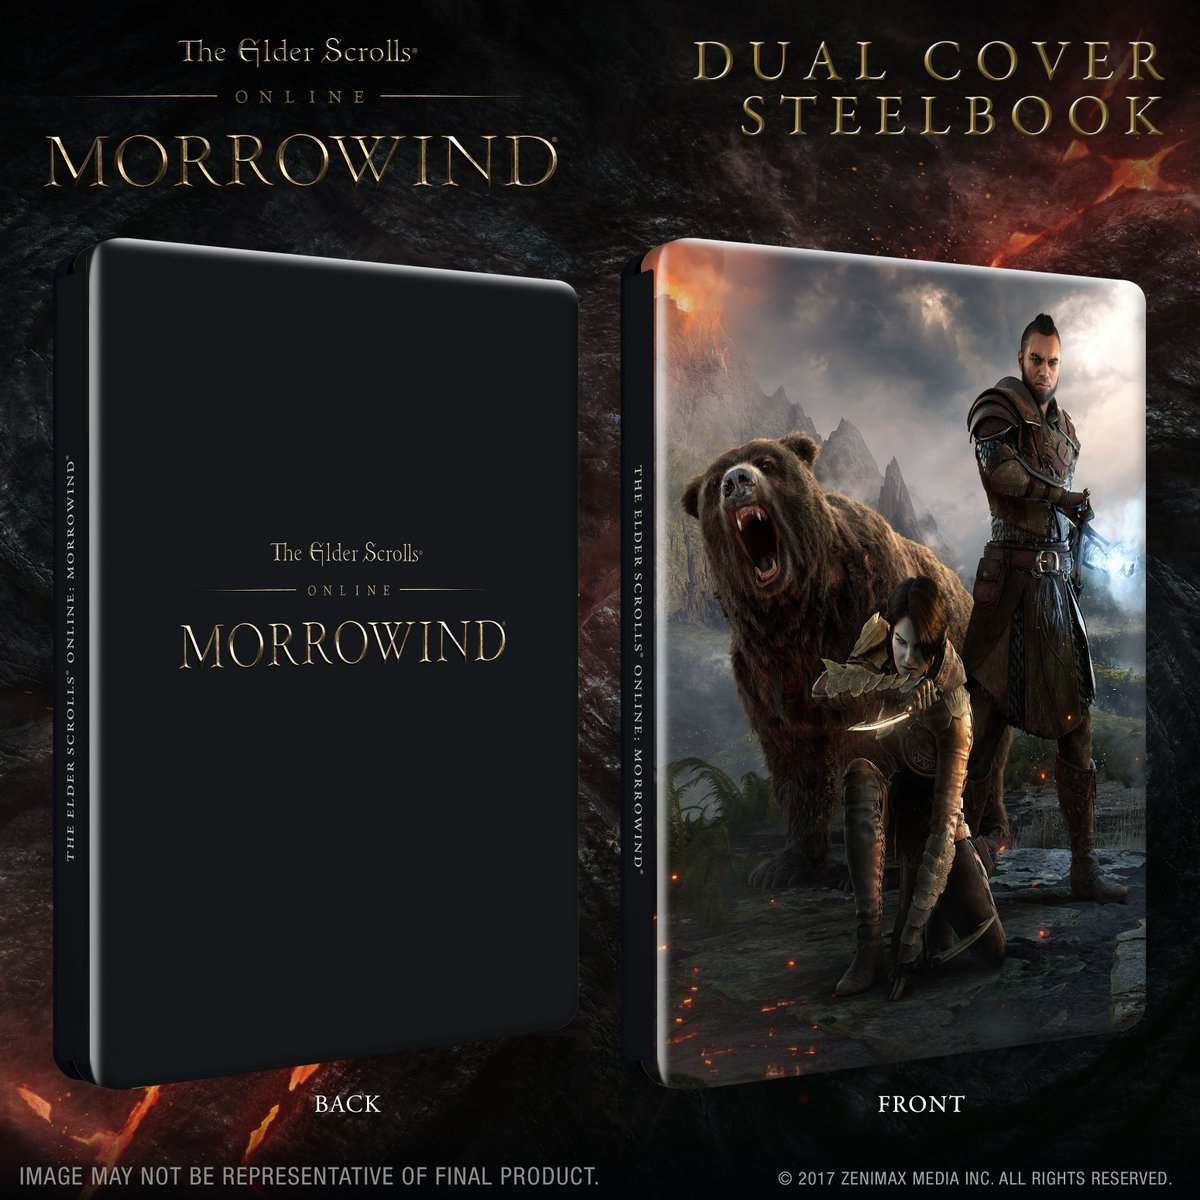 The Elder Scrolls Online Morrowind (Steelbook)